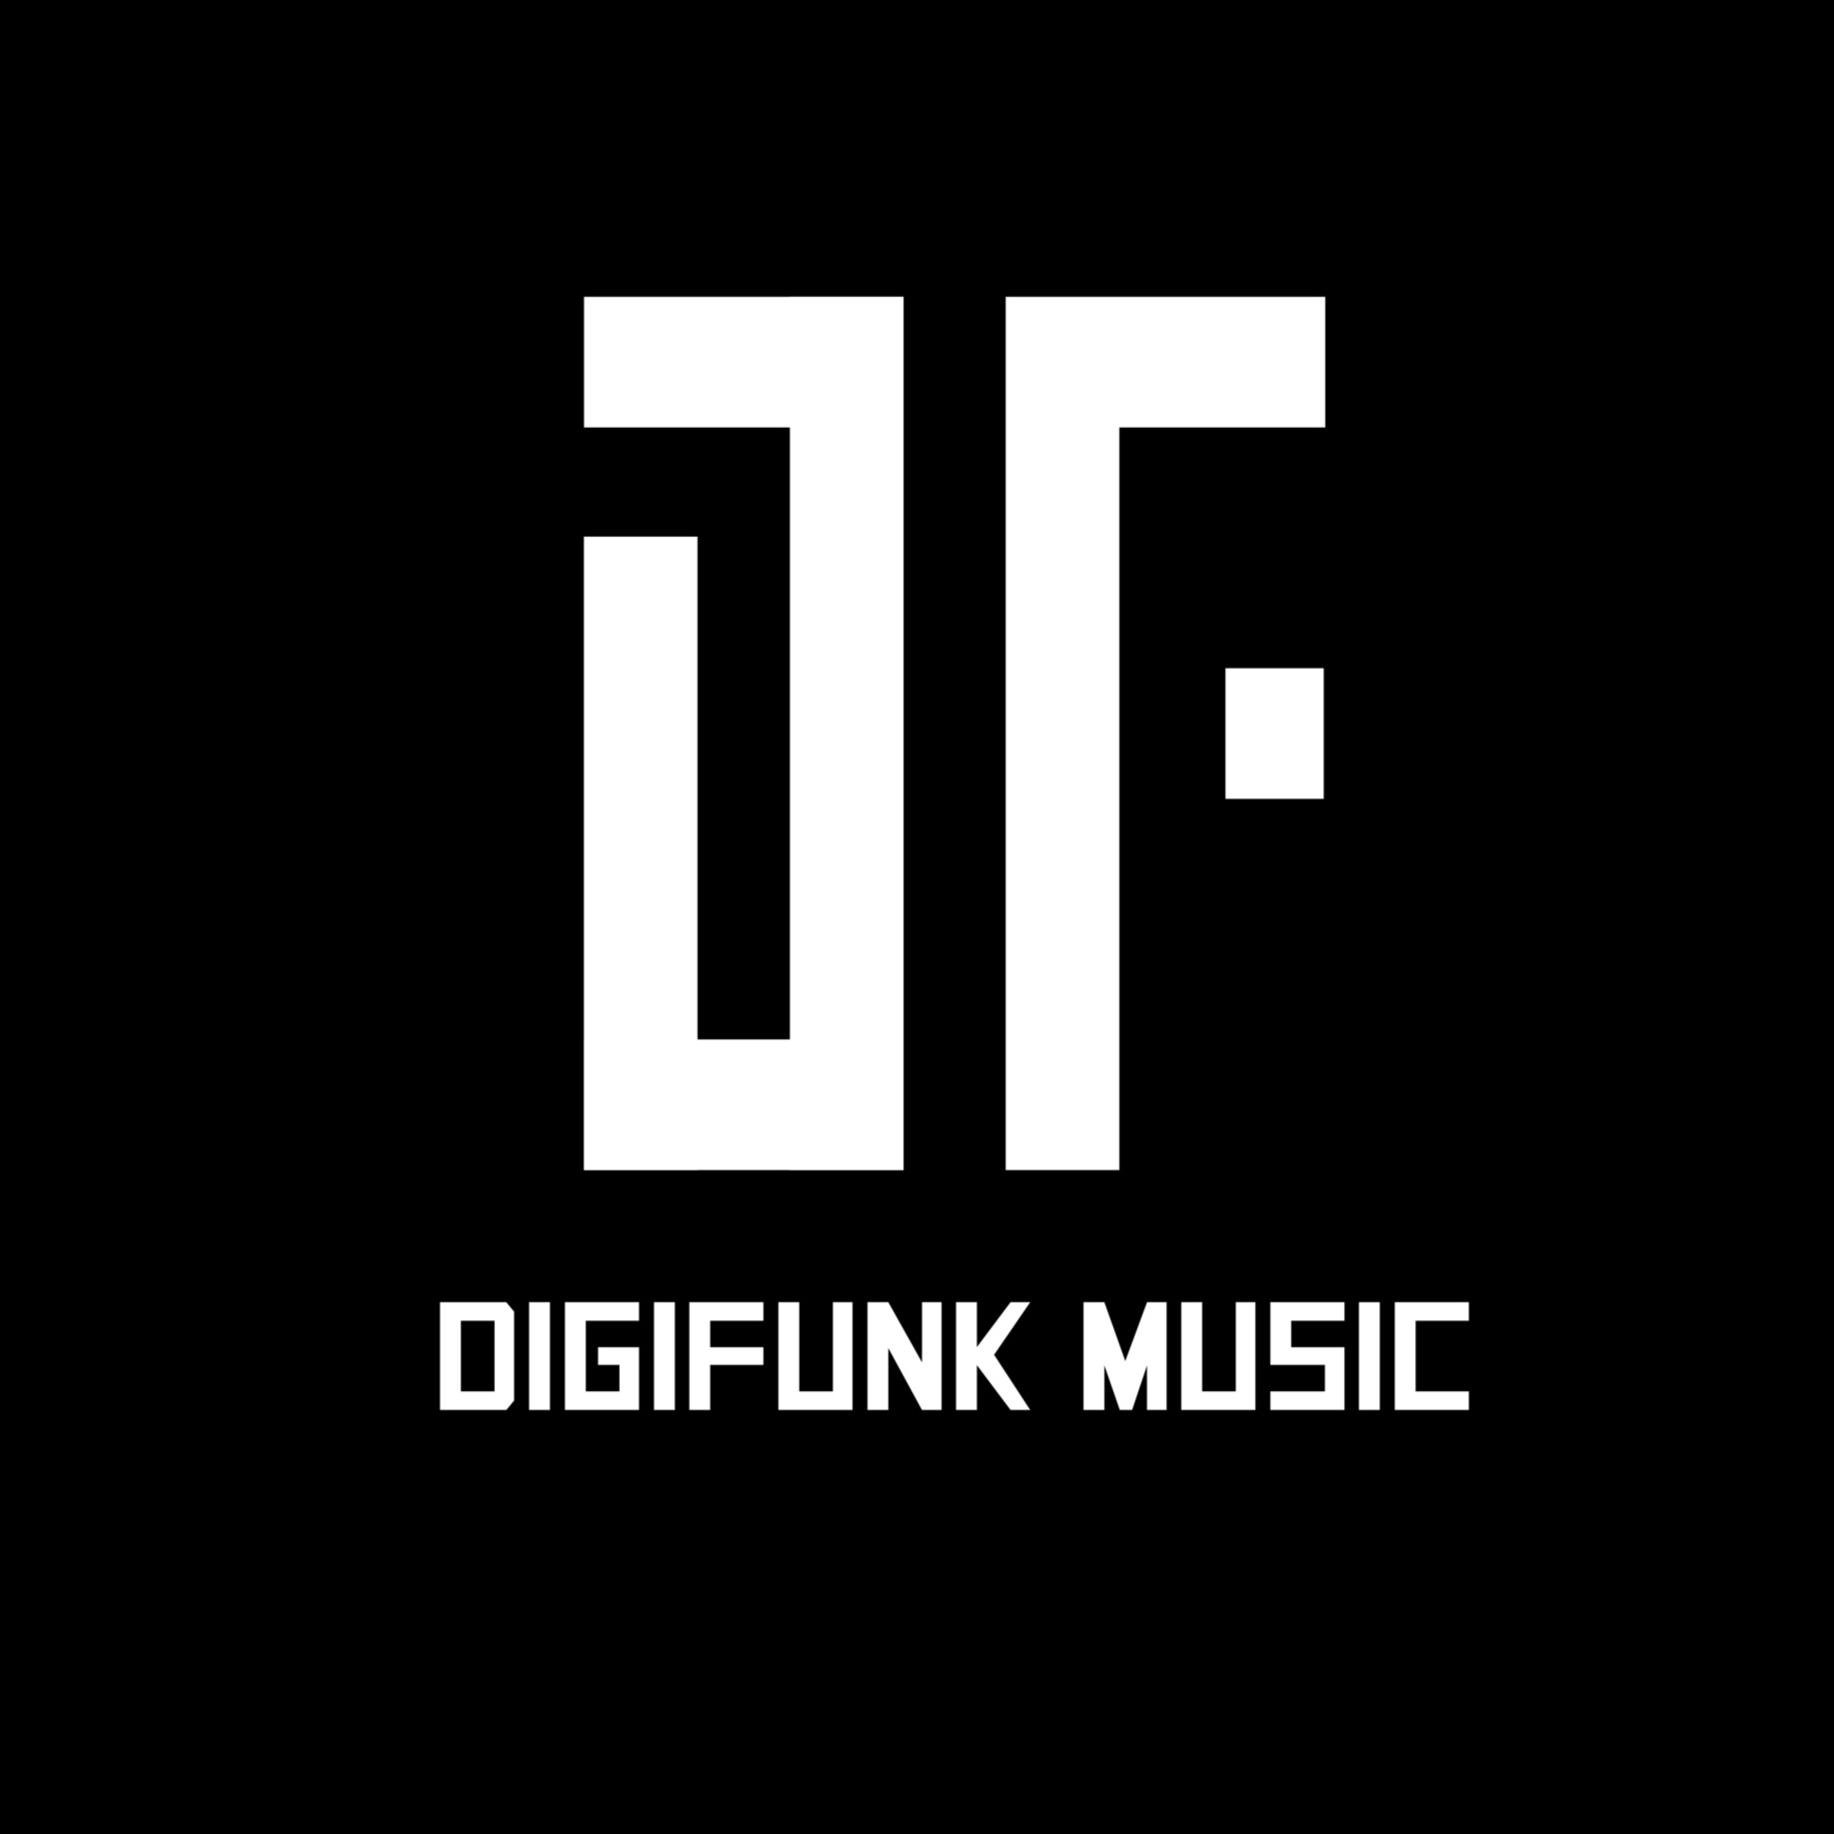 DigifunkMusic